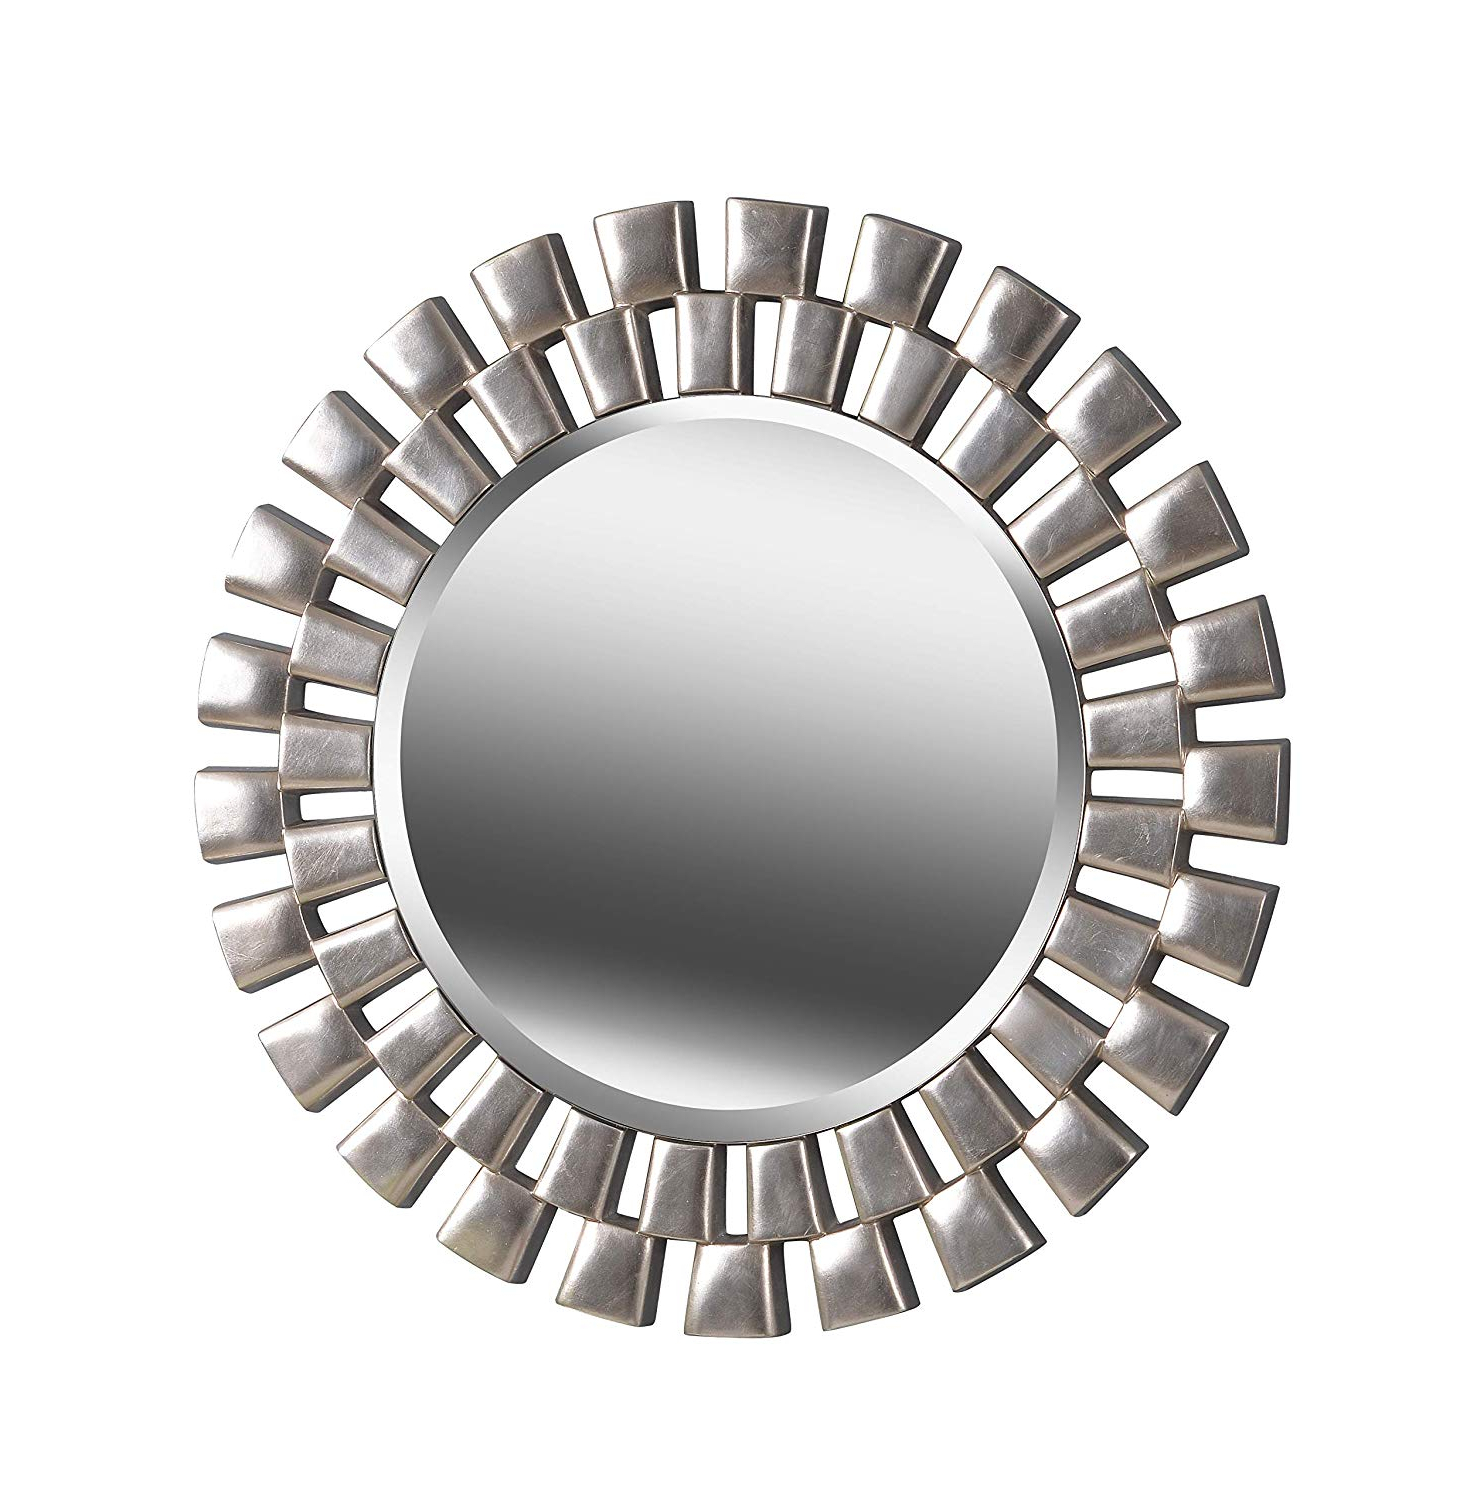 Kenroy Home Gilbert Wall Mirror With Silver Finish, 36 Inch Diameter With Regard To Widely Used Gilbert Wall Mirrors (View 3 of 20)